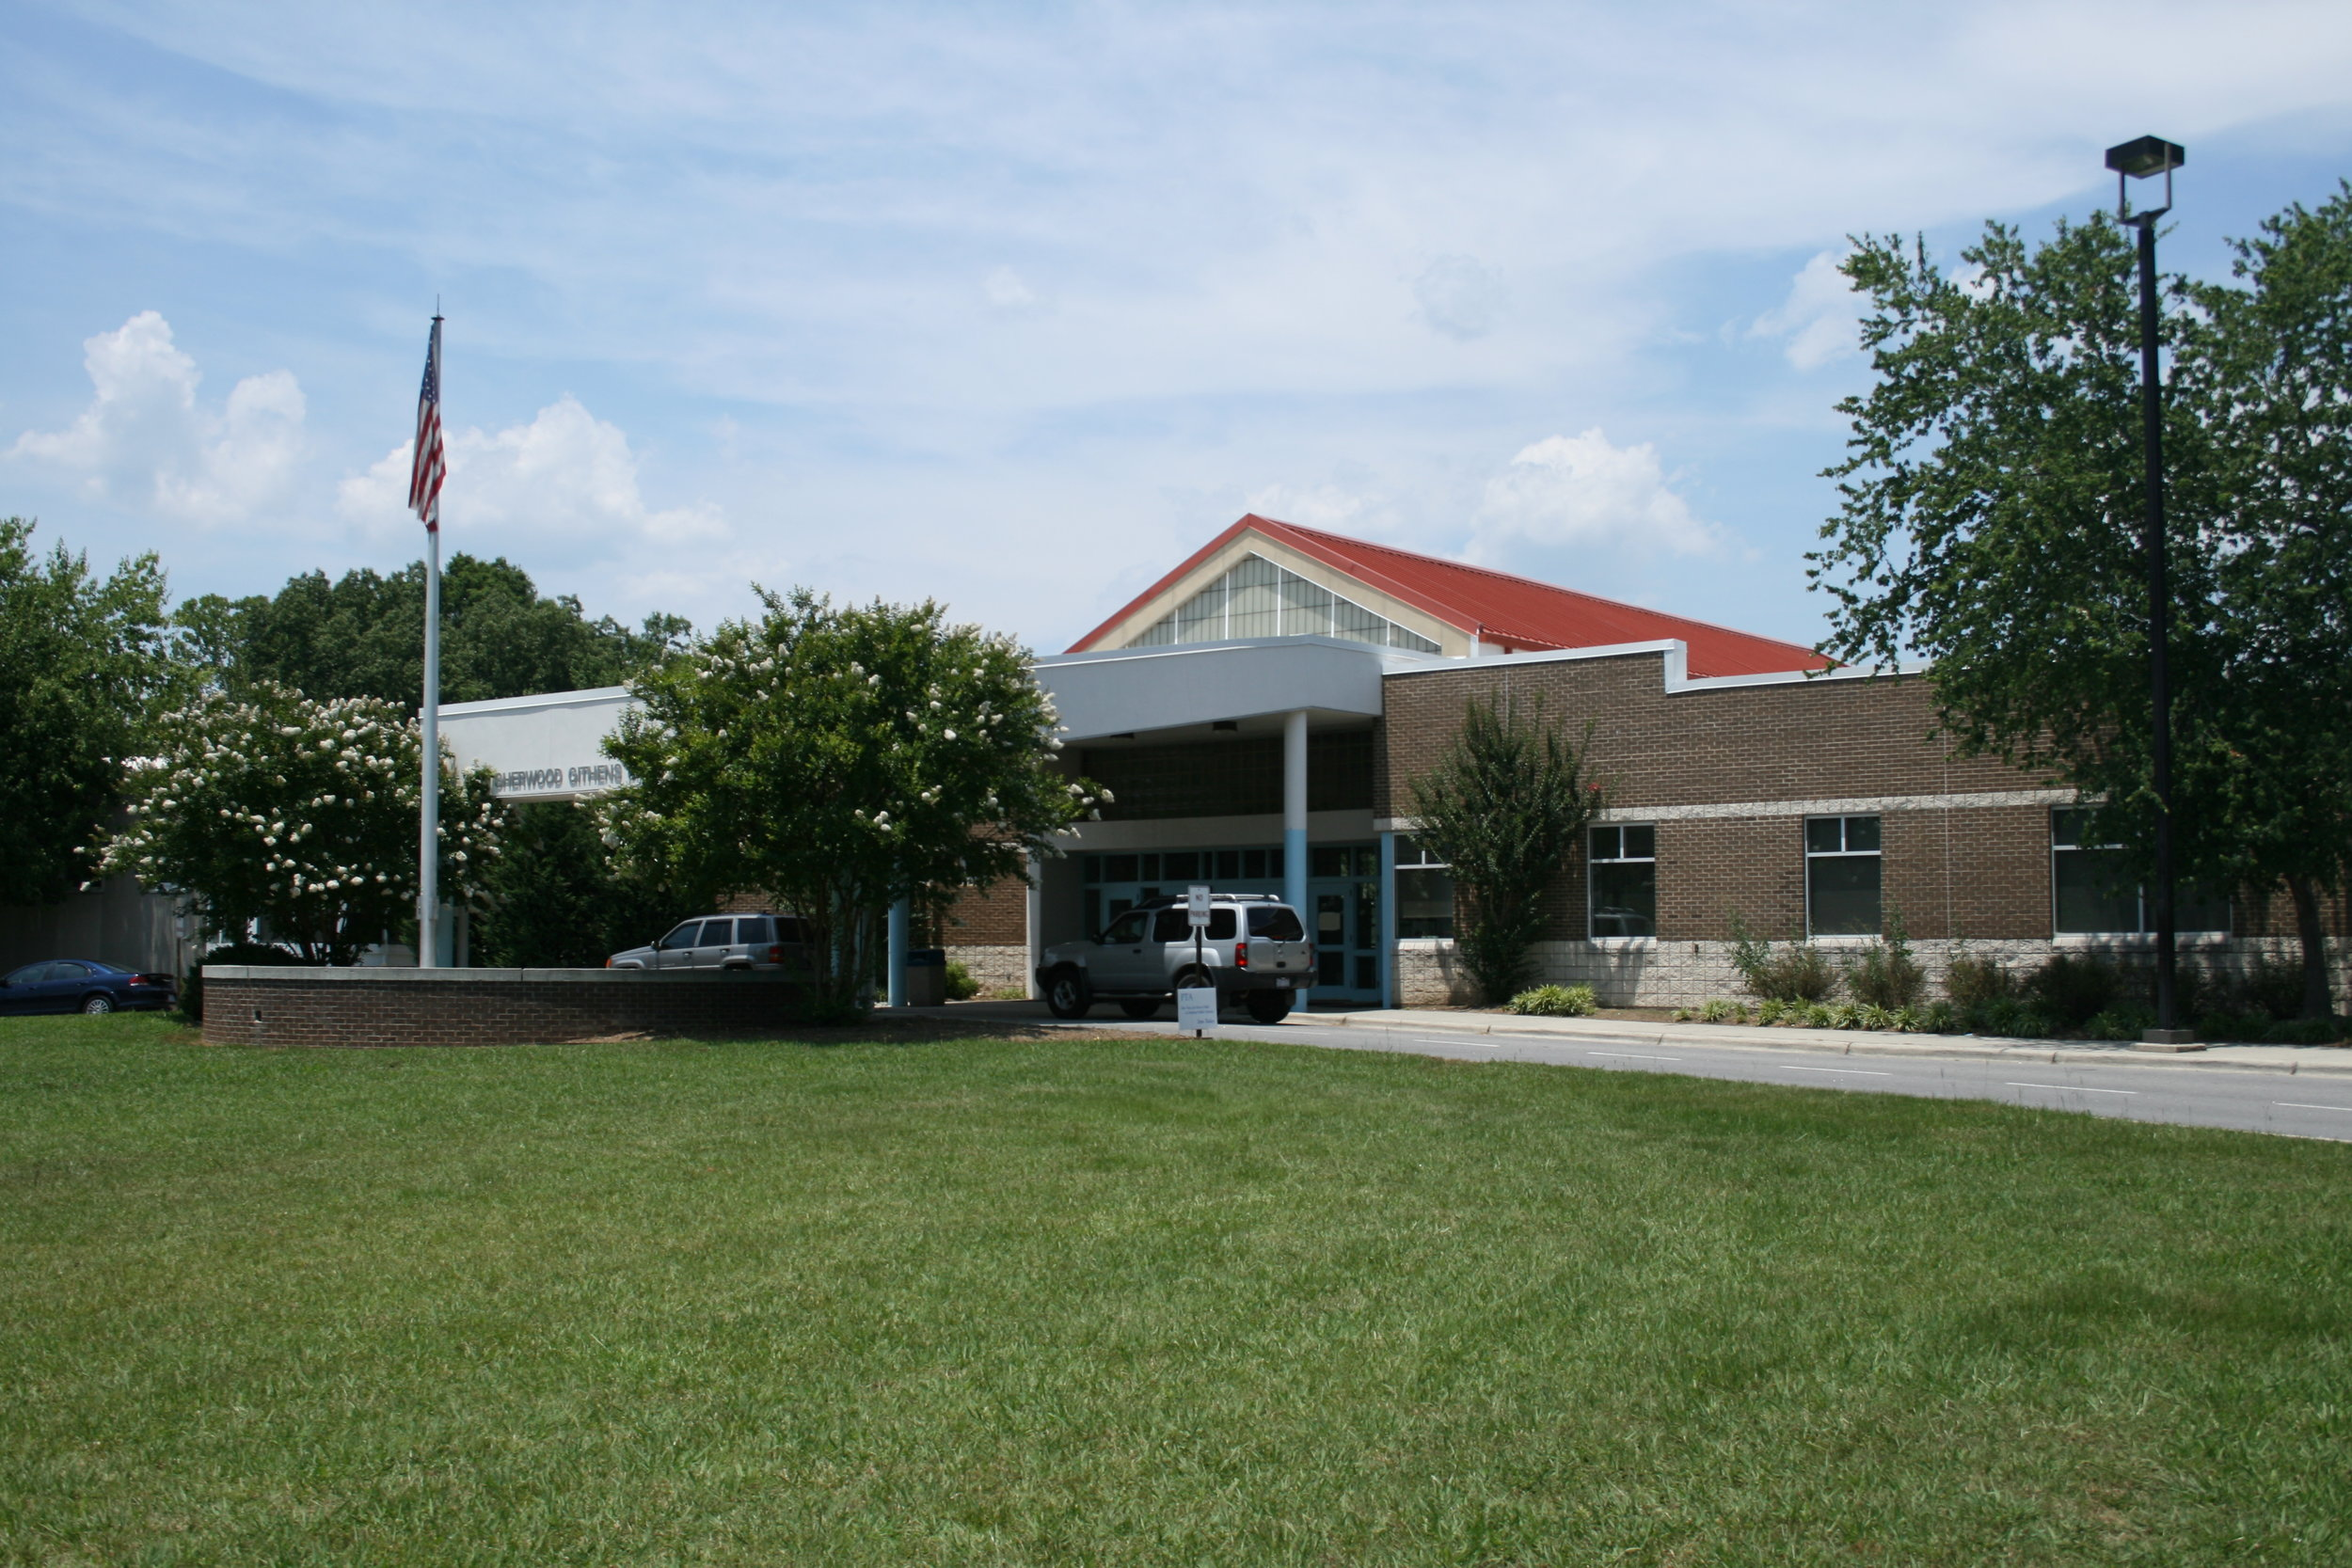 2008-06-19_Sherwood_Githens_Middle_School.jpg